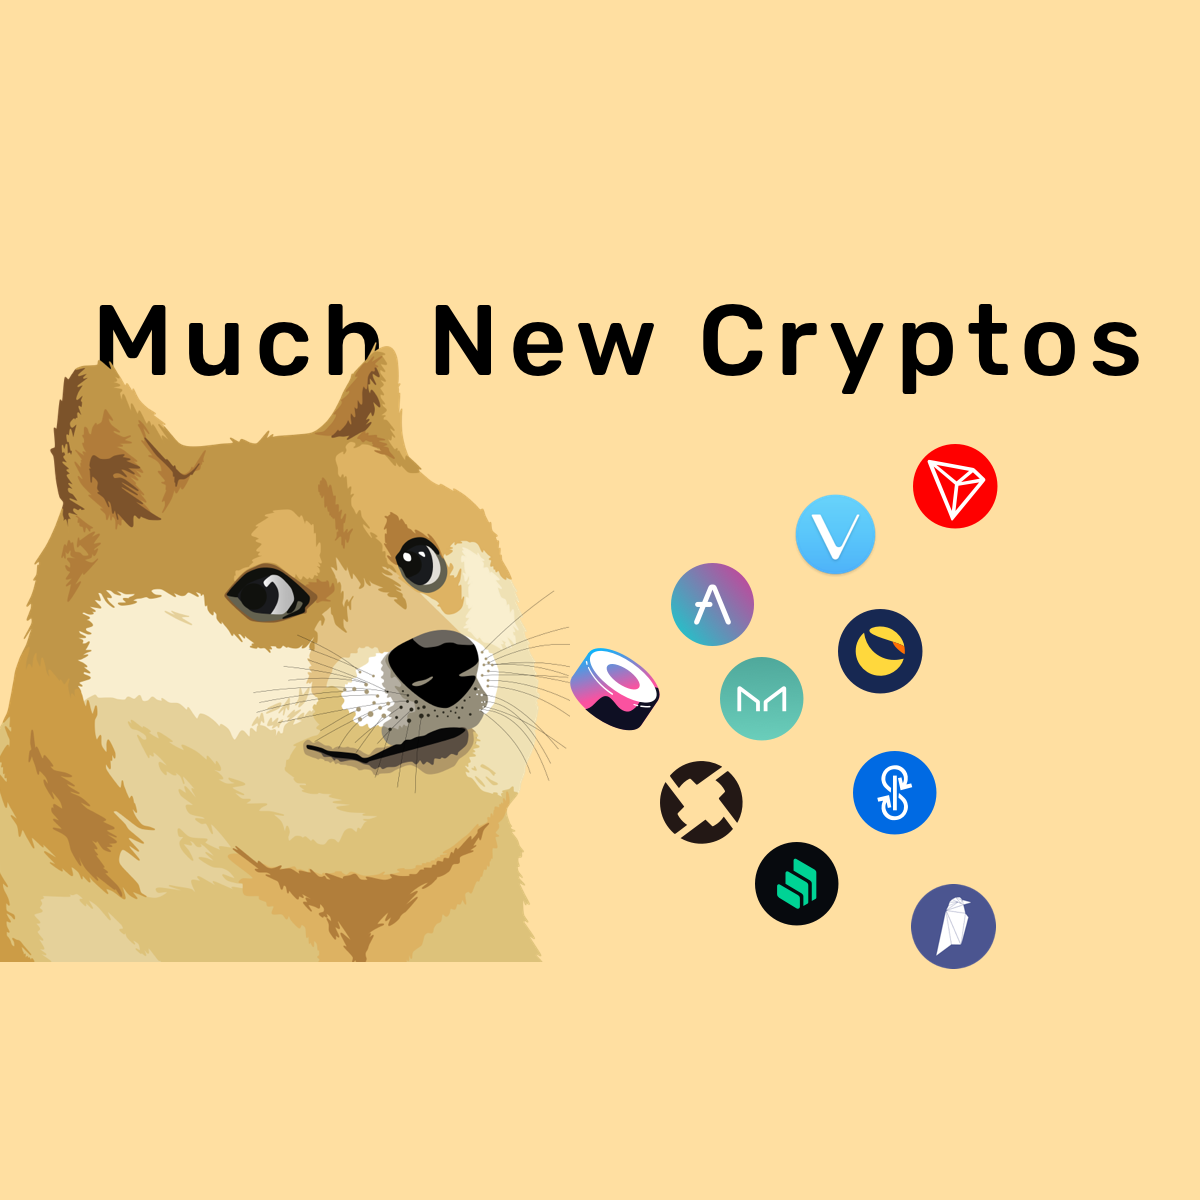 Doge among top crypto coins like TRON, YFI, MKR, & ZRX.